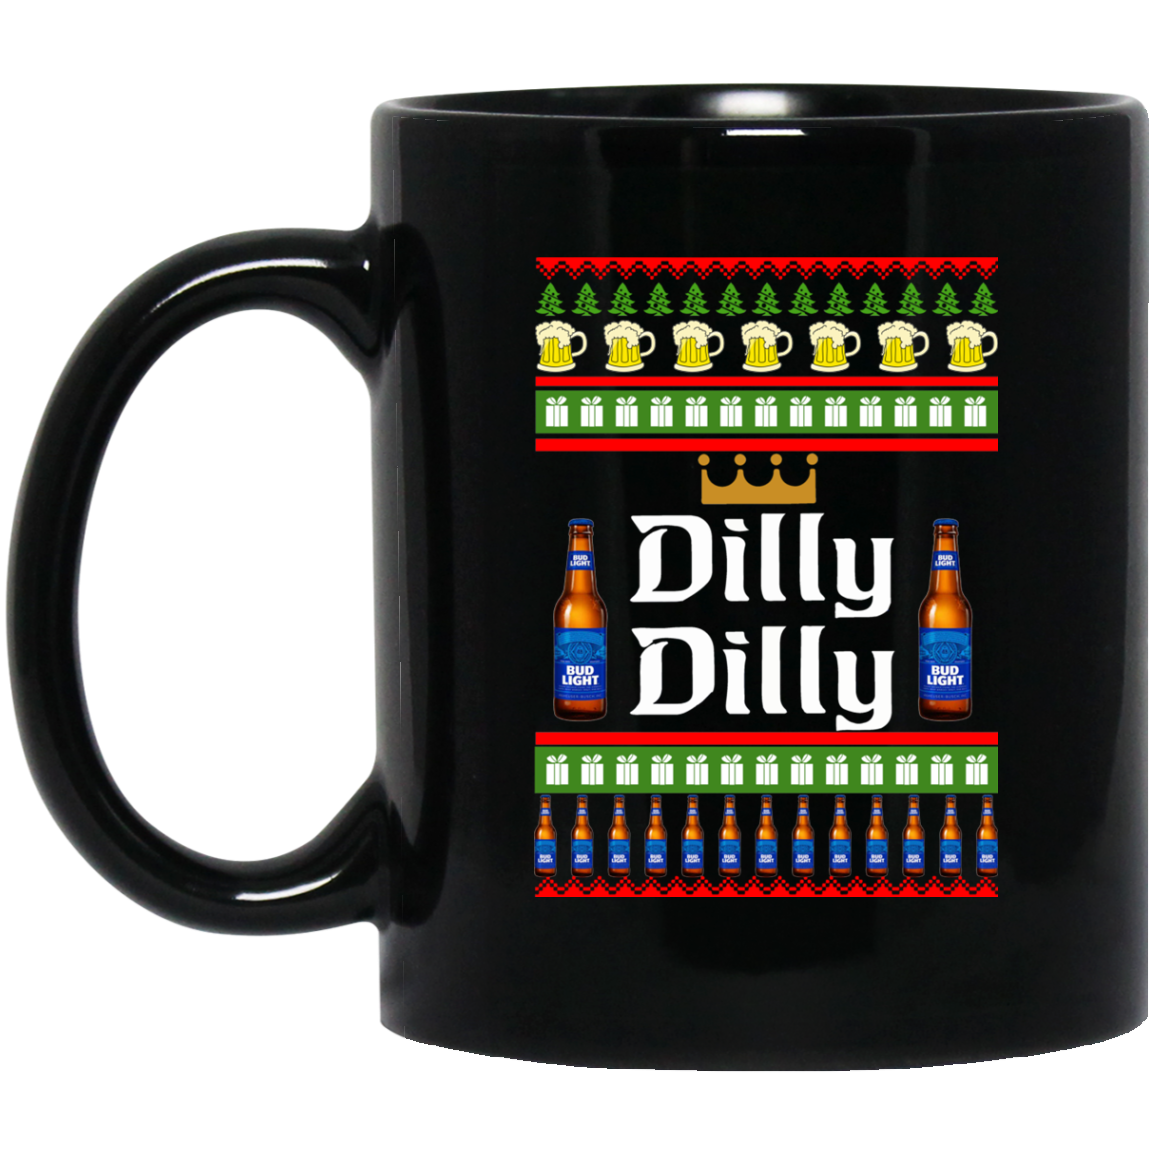 image 22 - Dilly Dilly Christmas Mug, Beer Stain